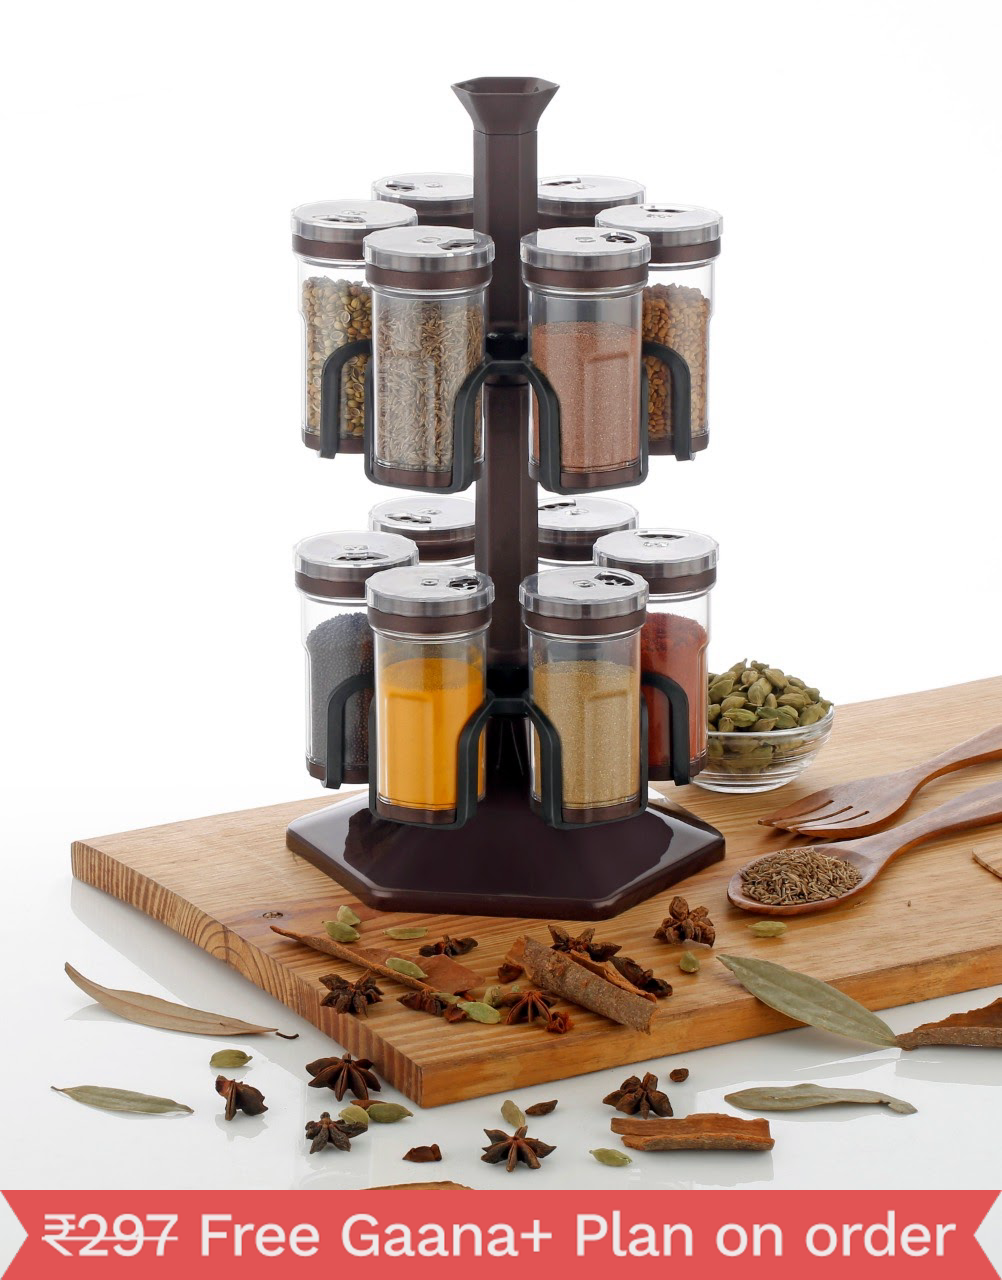 Home Turf Multipurpose Plastic Deluxe Rotating Spice Rack / Masala Rack 12 in 1 - Brown